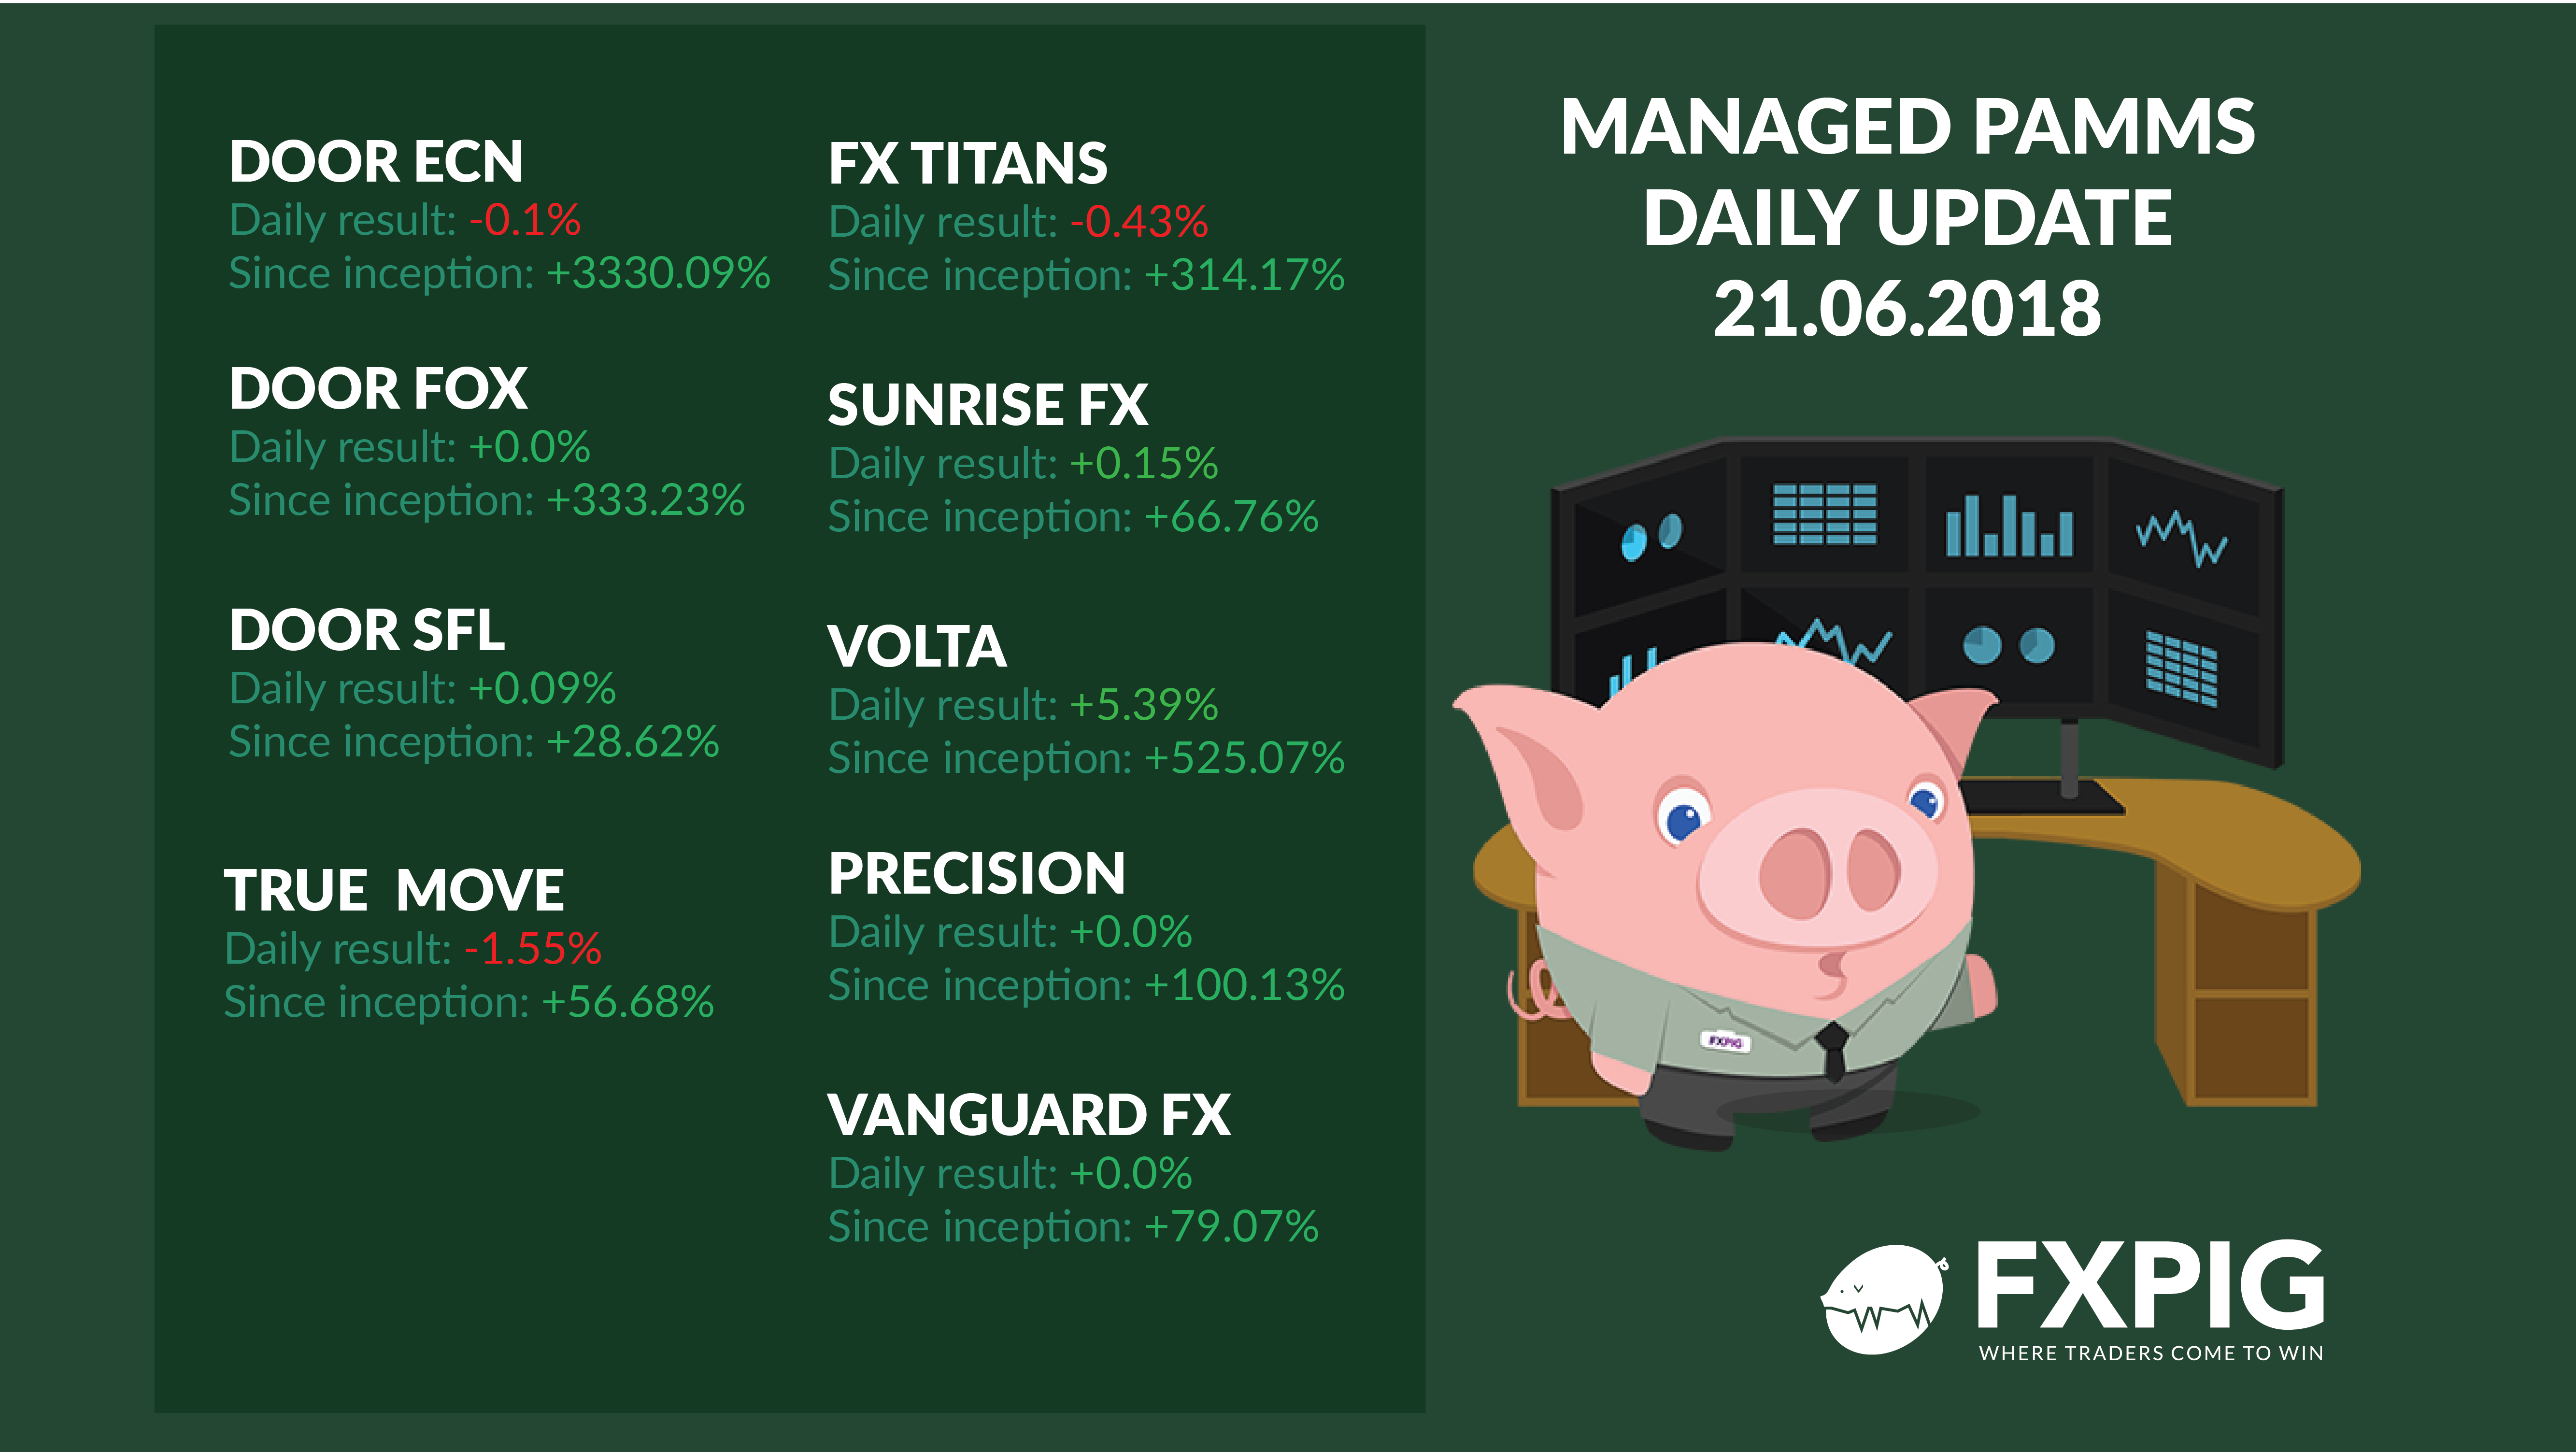 FOREX_managed-forex-accounts-daily-results2106_FXPIG